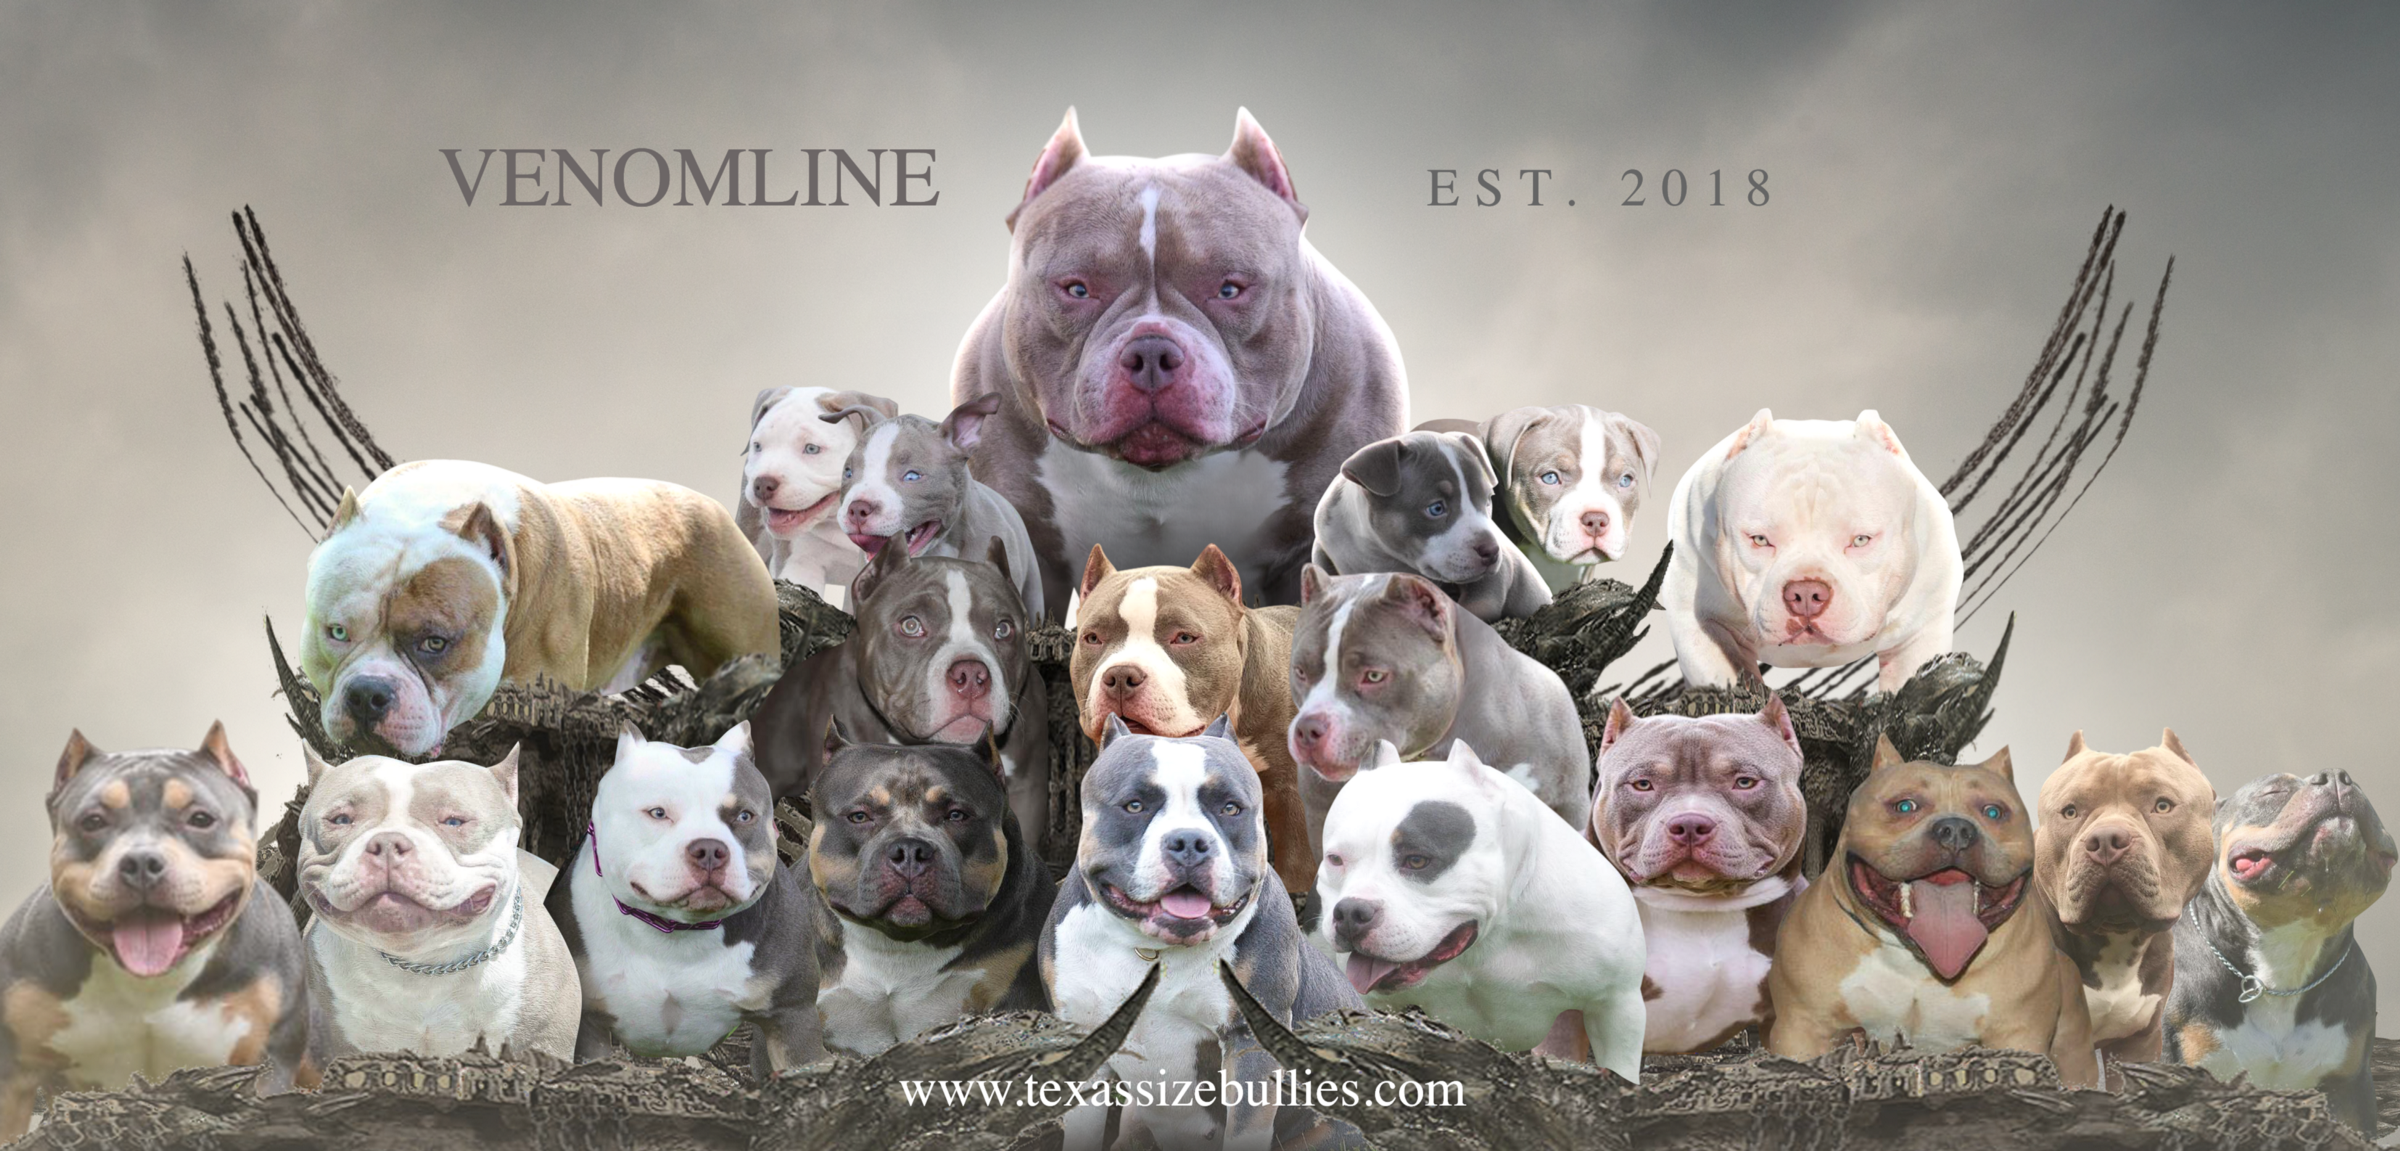 The Extreme Pocket Bully Pocket Bully American Bully Bully Breeds